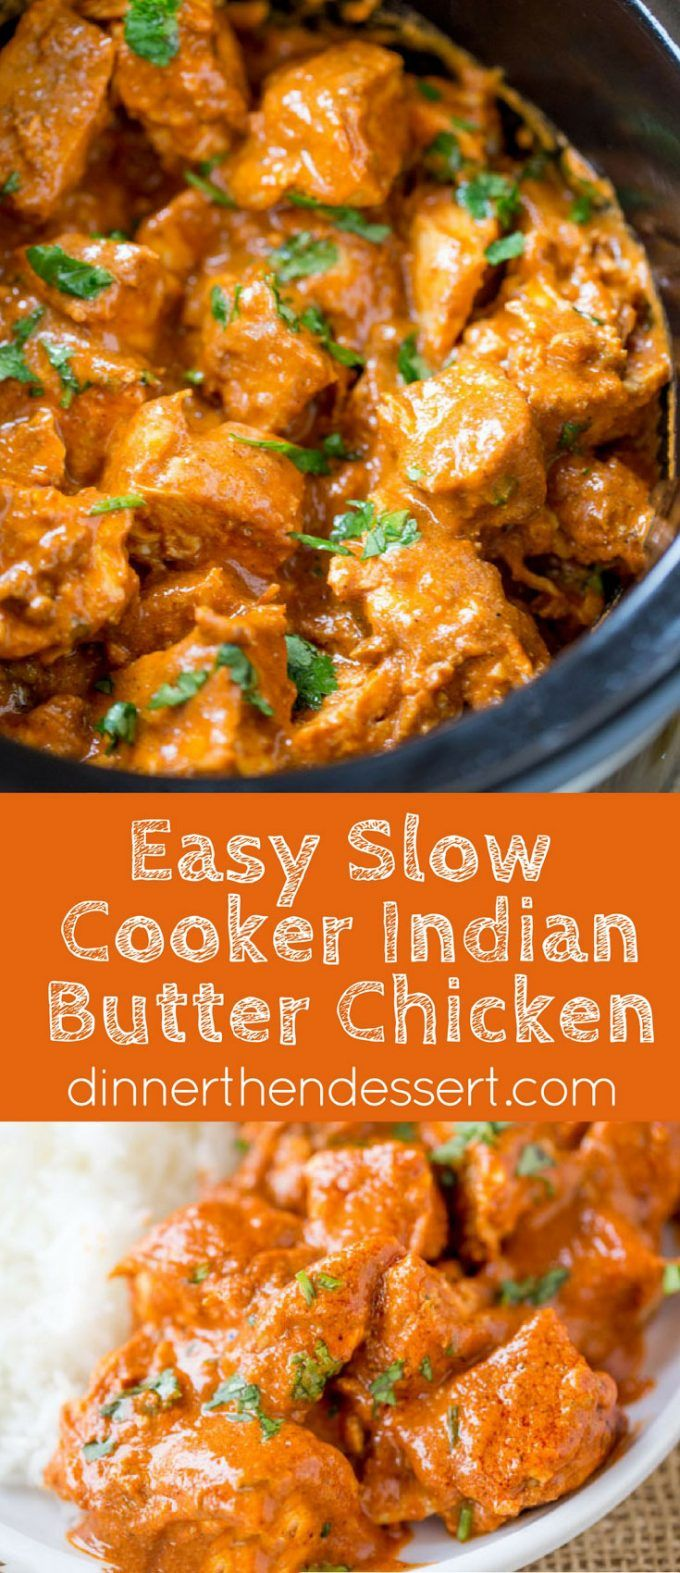 How to make non spicy butter chicken